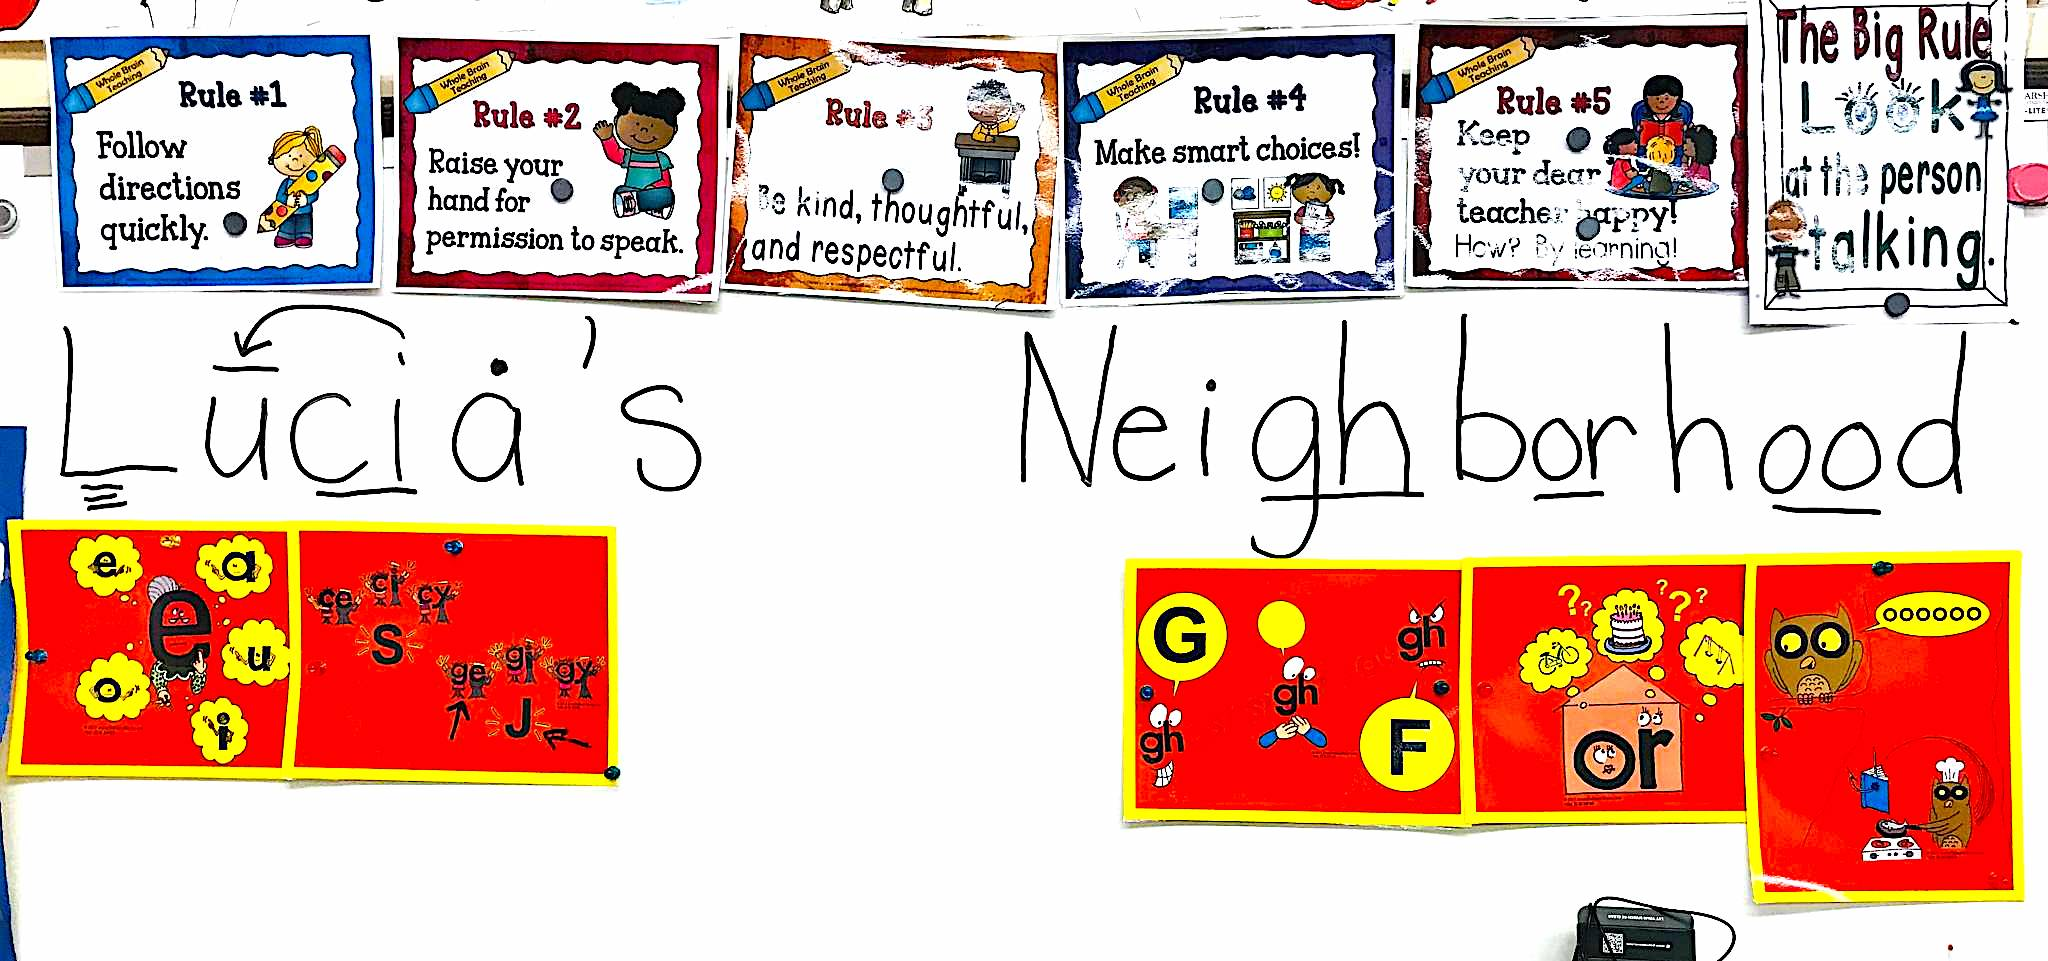 phonics rules in reading series